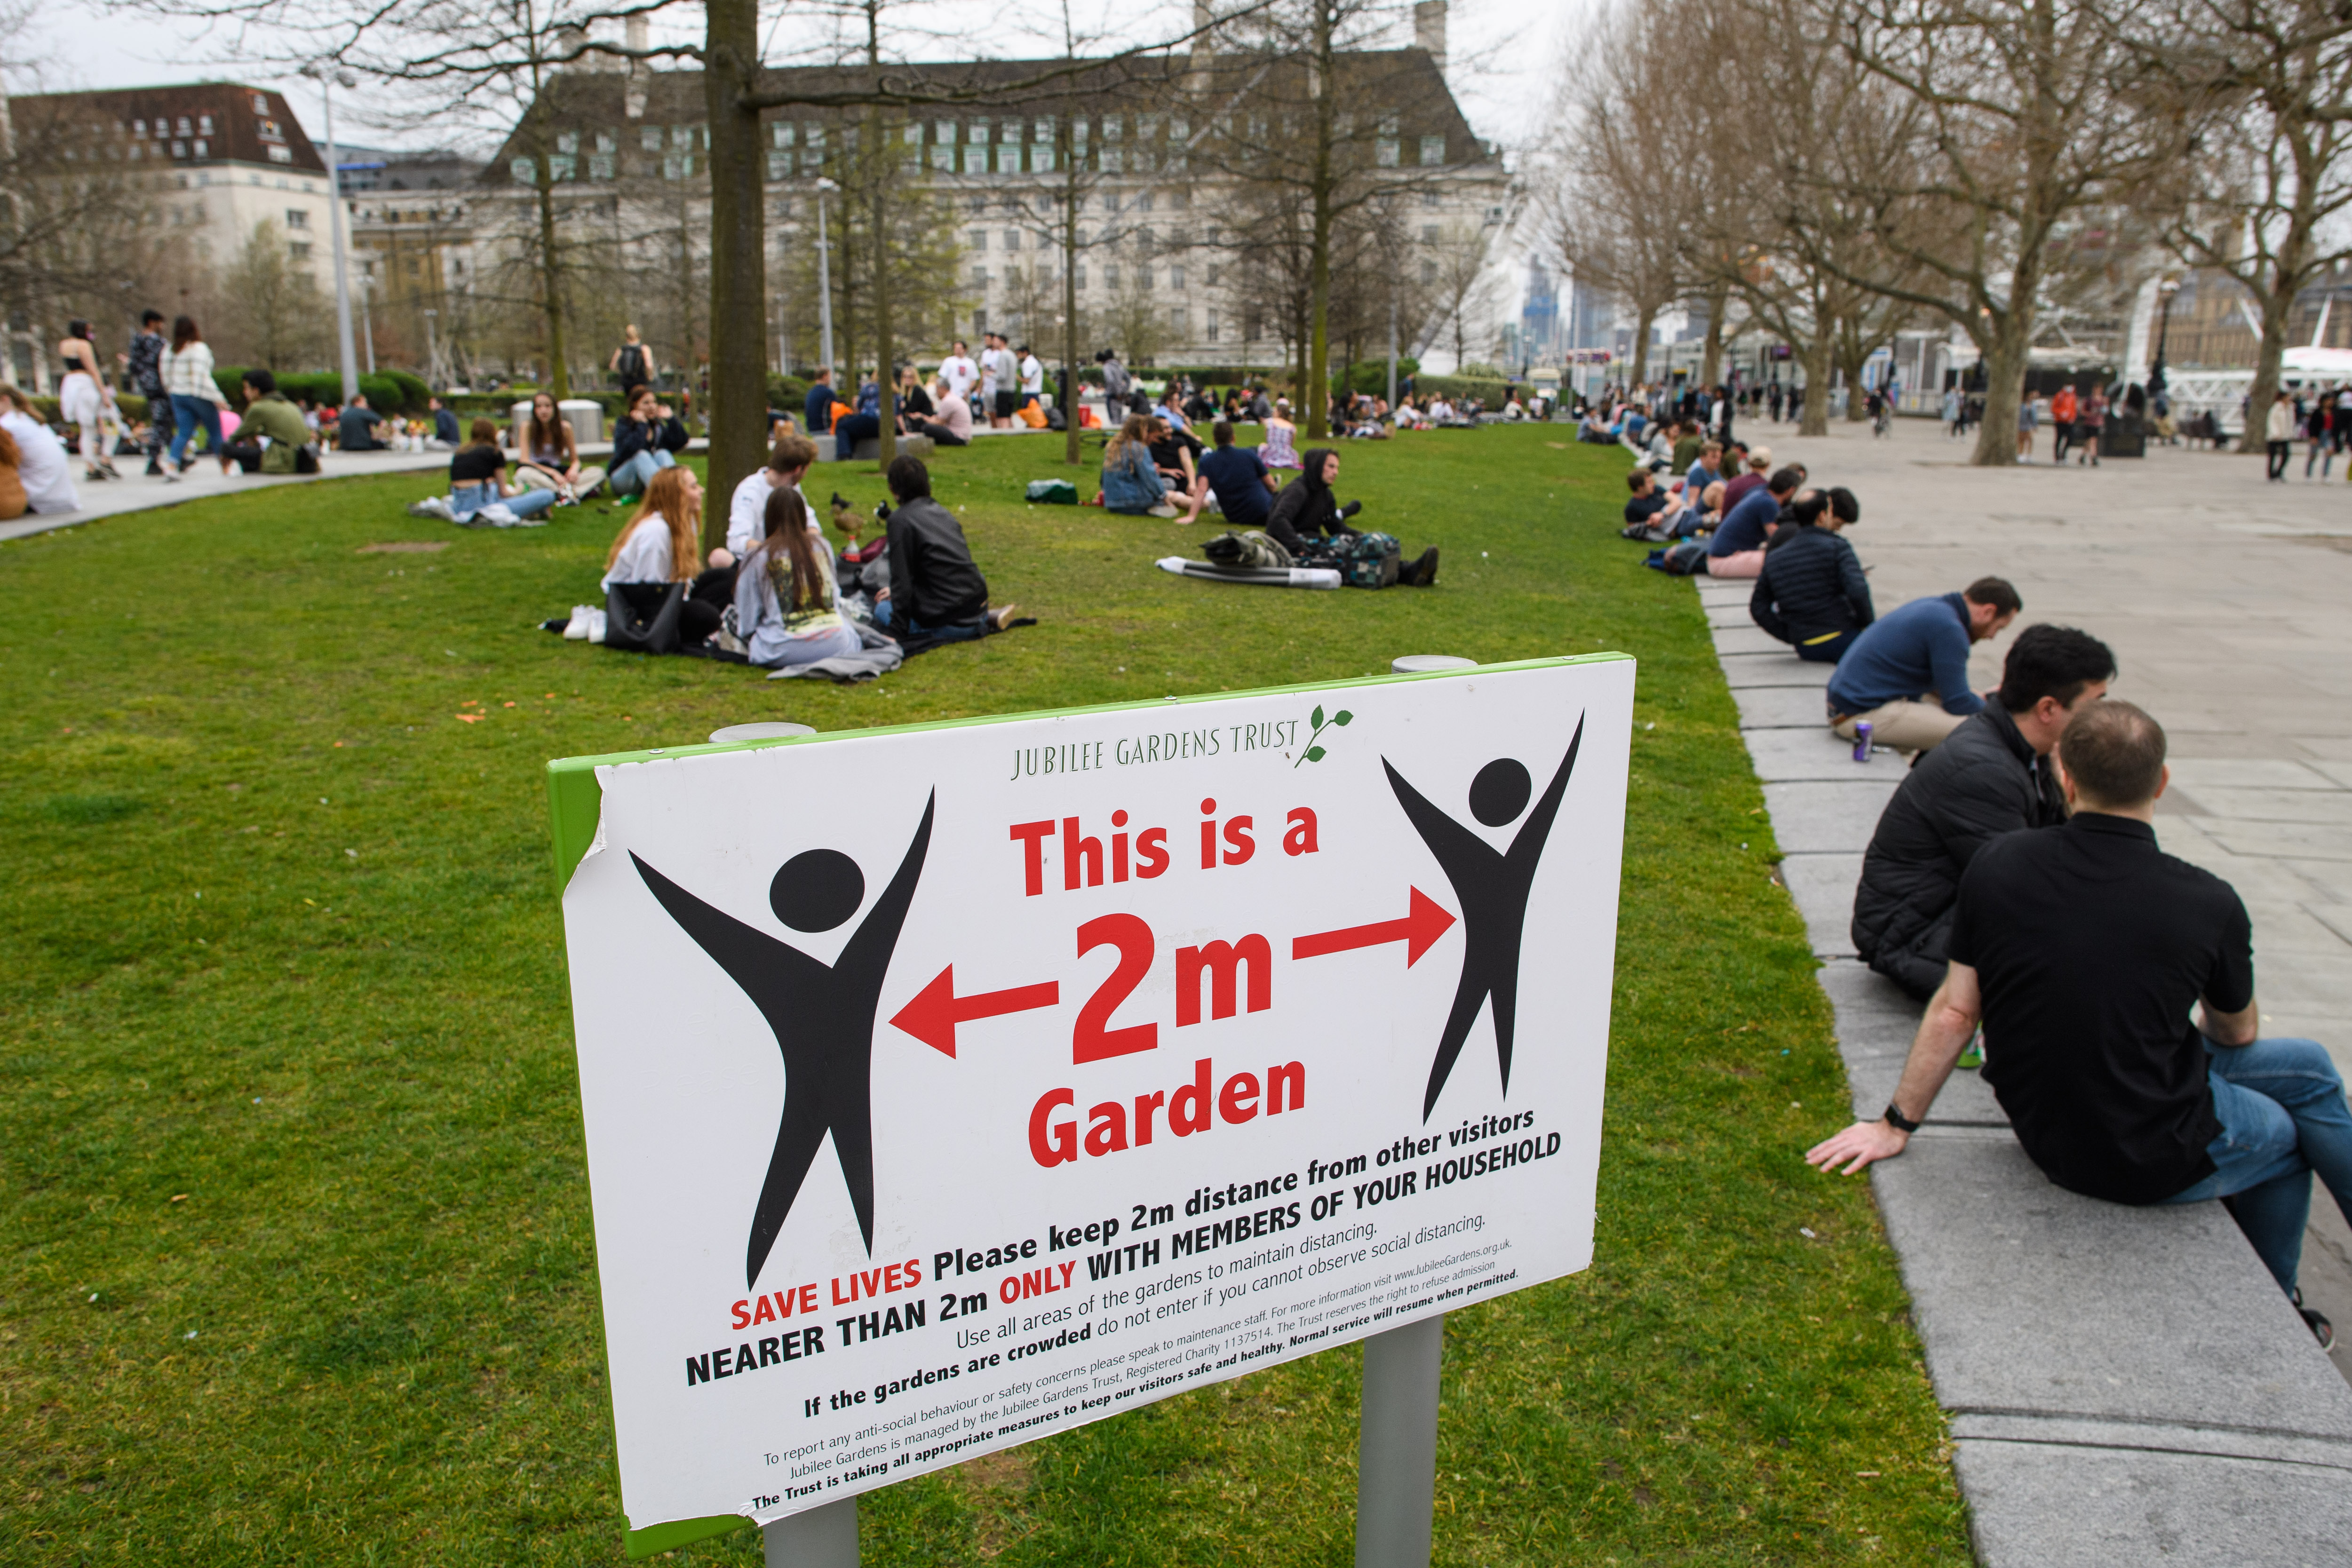 <p>Signs recommend social distancing on the South Bank in central London, as coronavirus lockdown restrictions are eased across the UK. Picture date: Wednesday March 31, 2021. Photo credit should read: Matt Crossick/Empics</p>